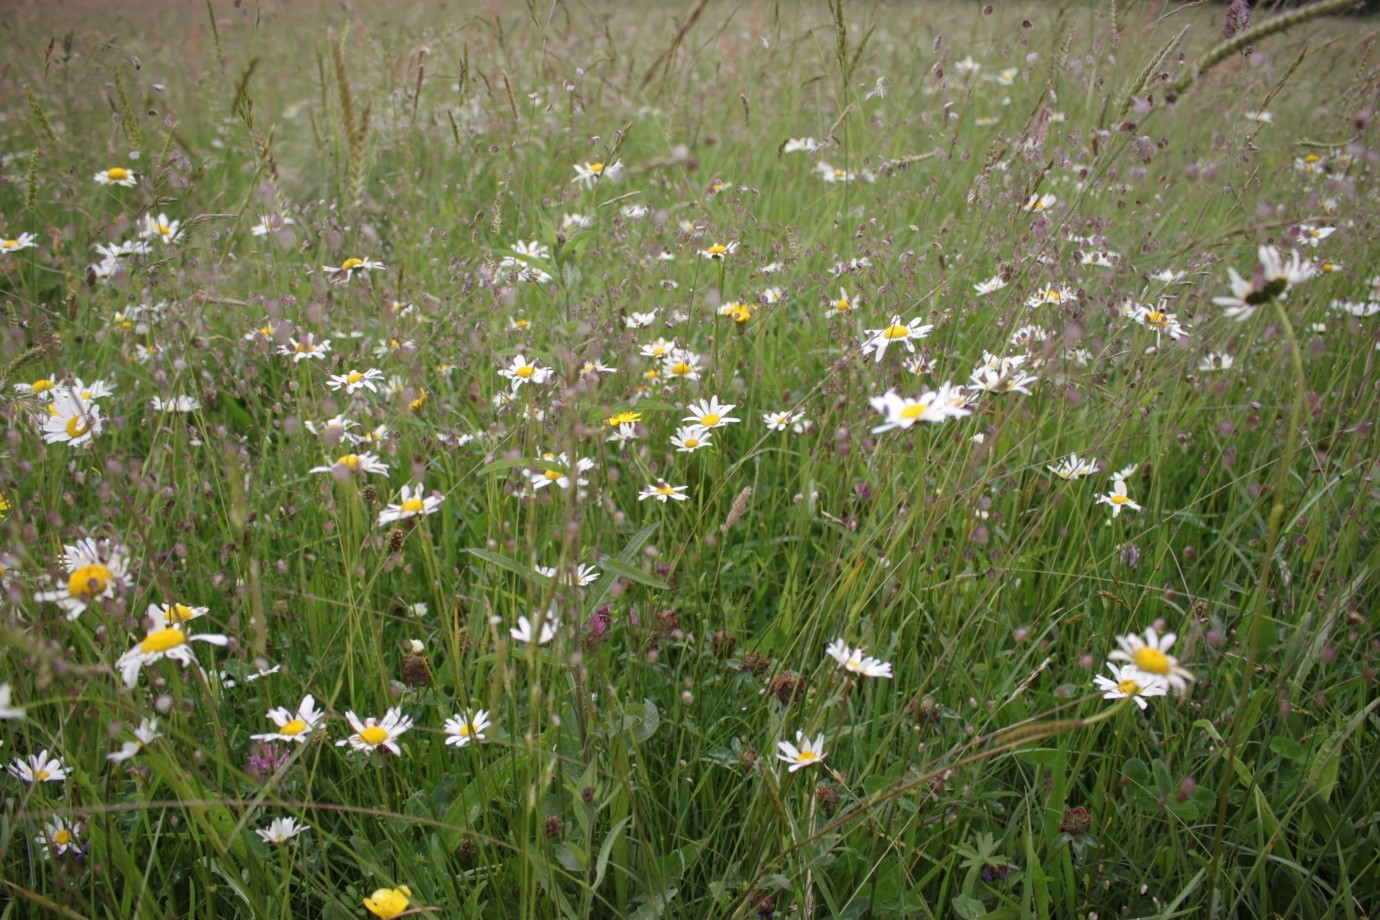 Flower-rich, dry hay meadow in County Leitrim